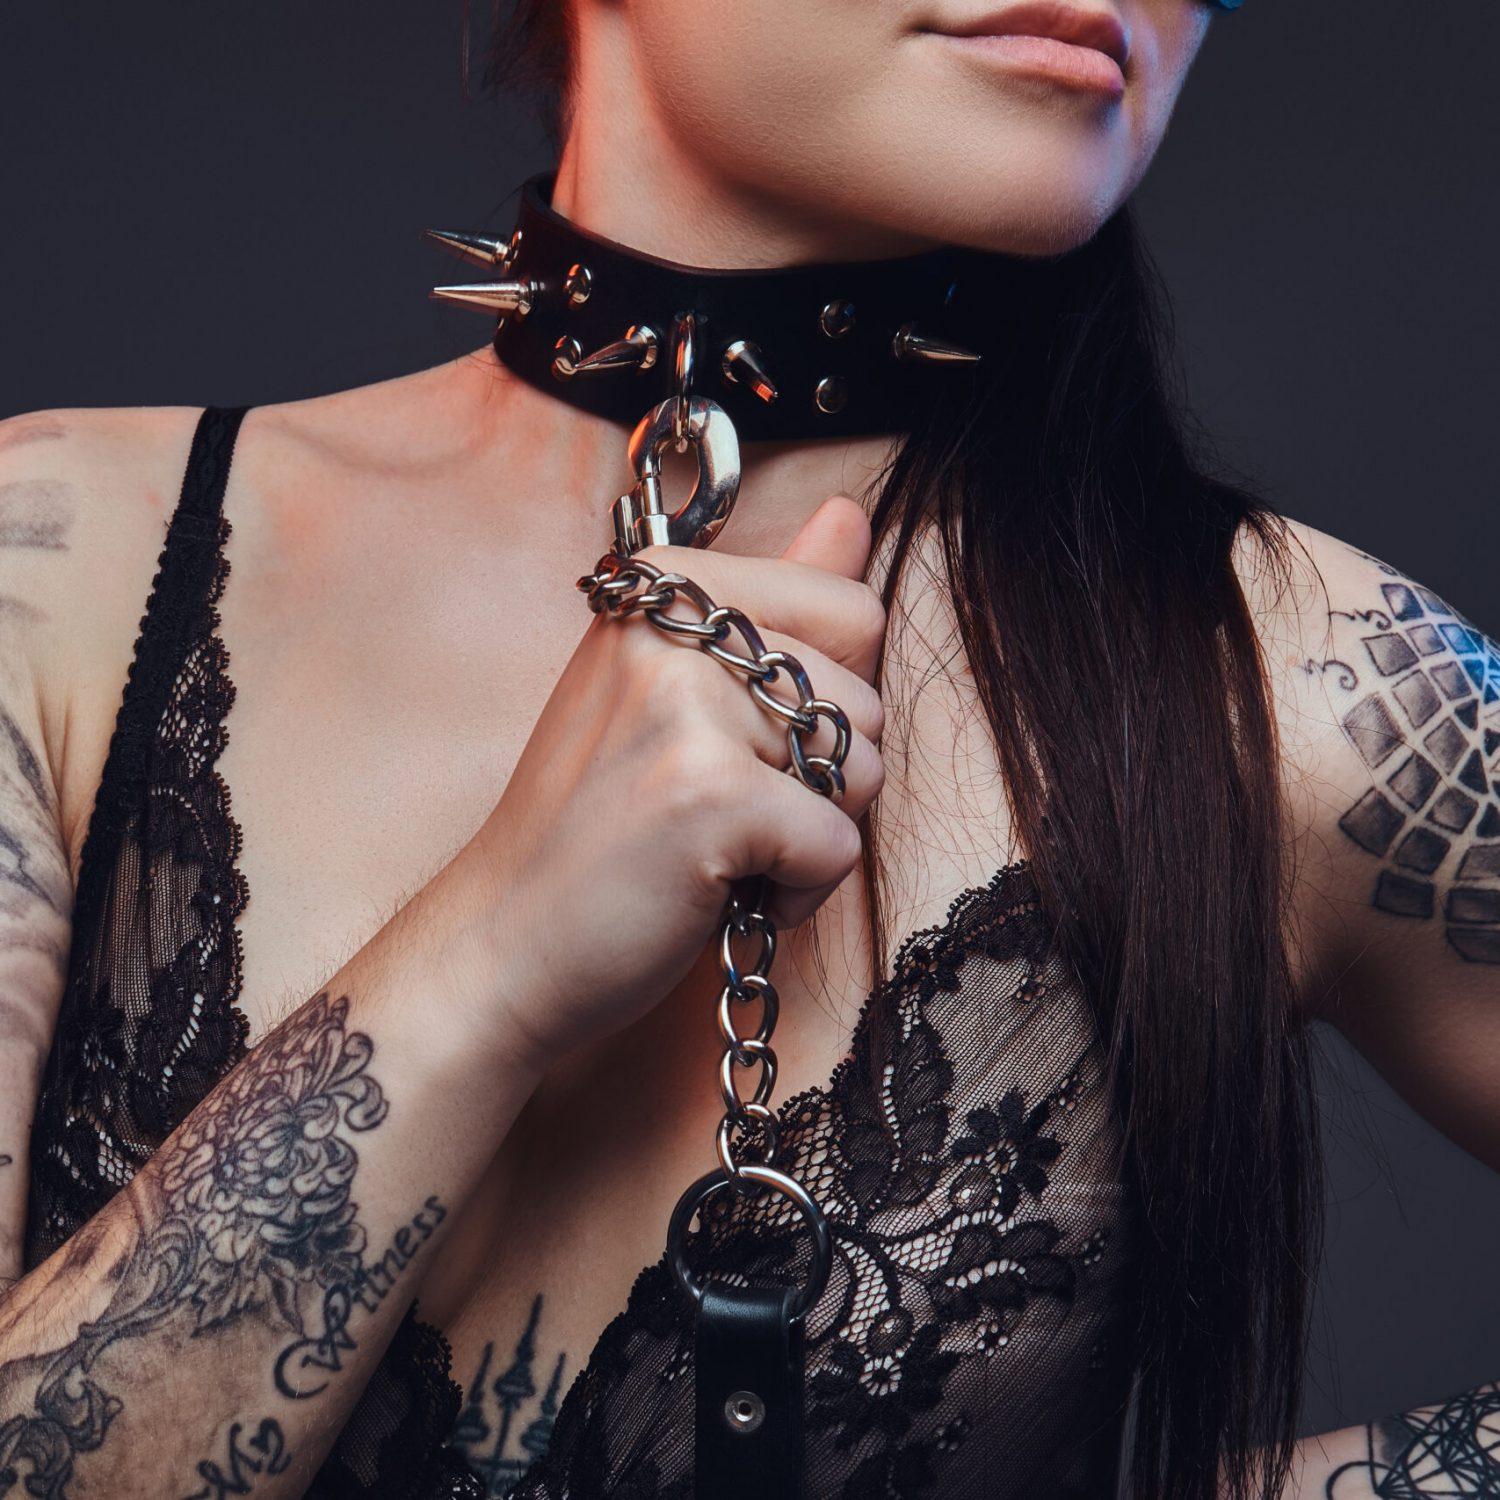 Close-up portrait of a sexy mistress girl wearing black lingerie in BDSM cat leather mask and accessories posing on a dark background.